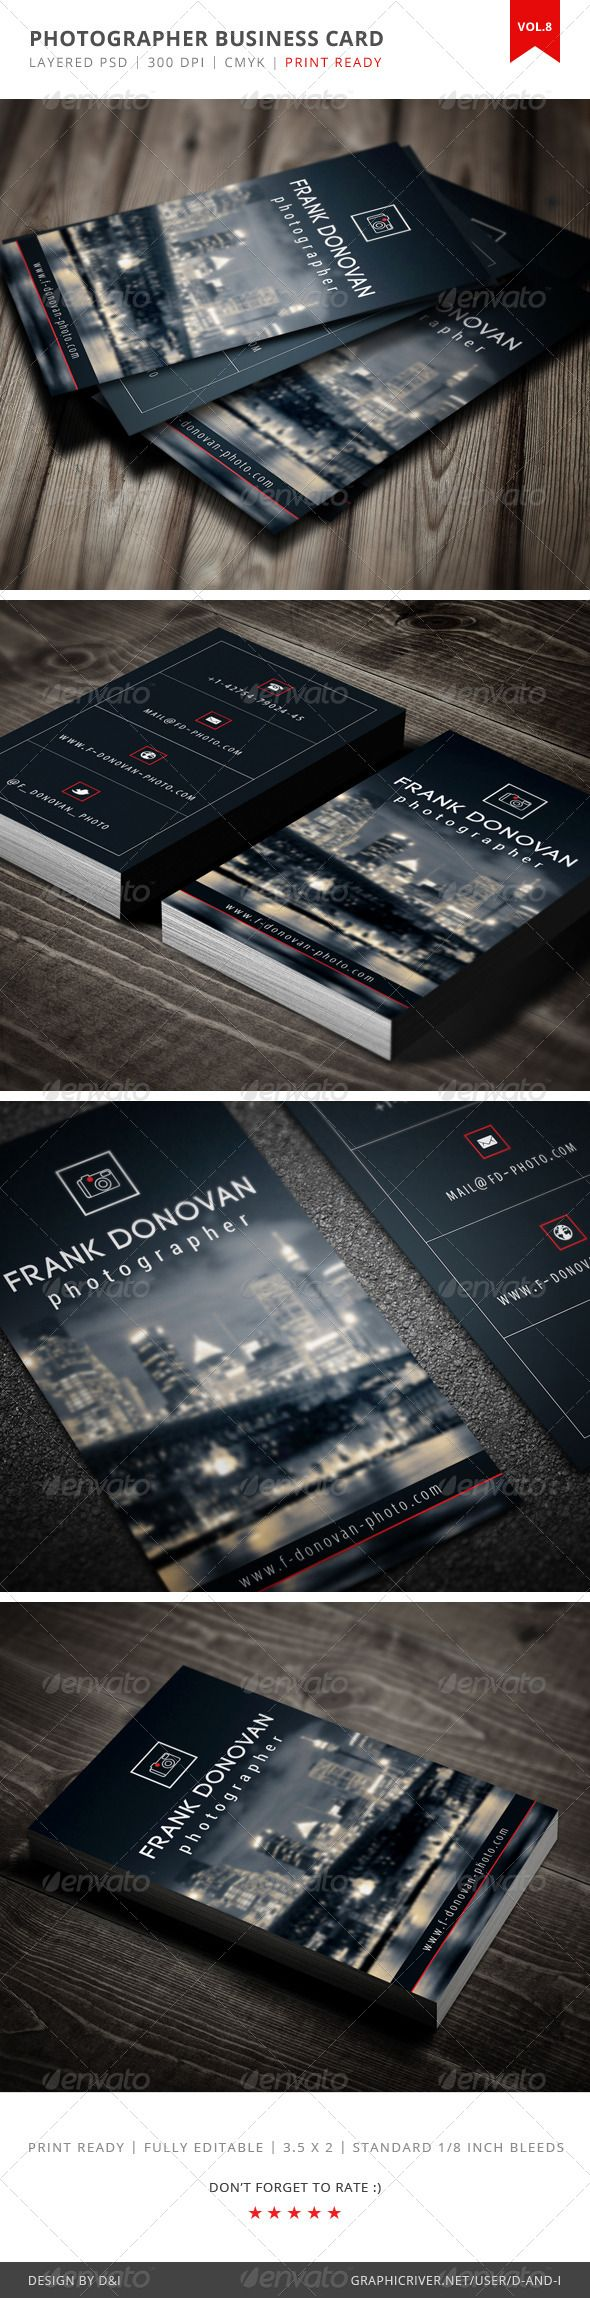 Photographer Business Card - Vol.8 - Creative Business Cards